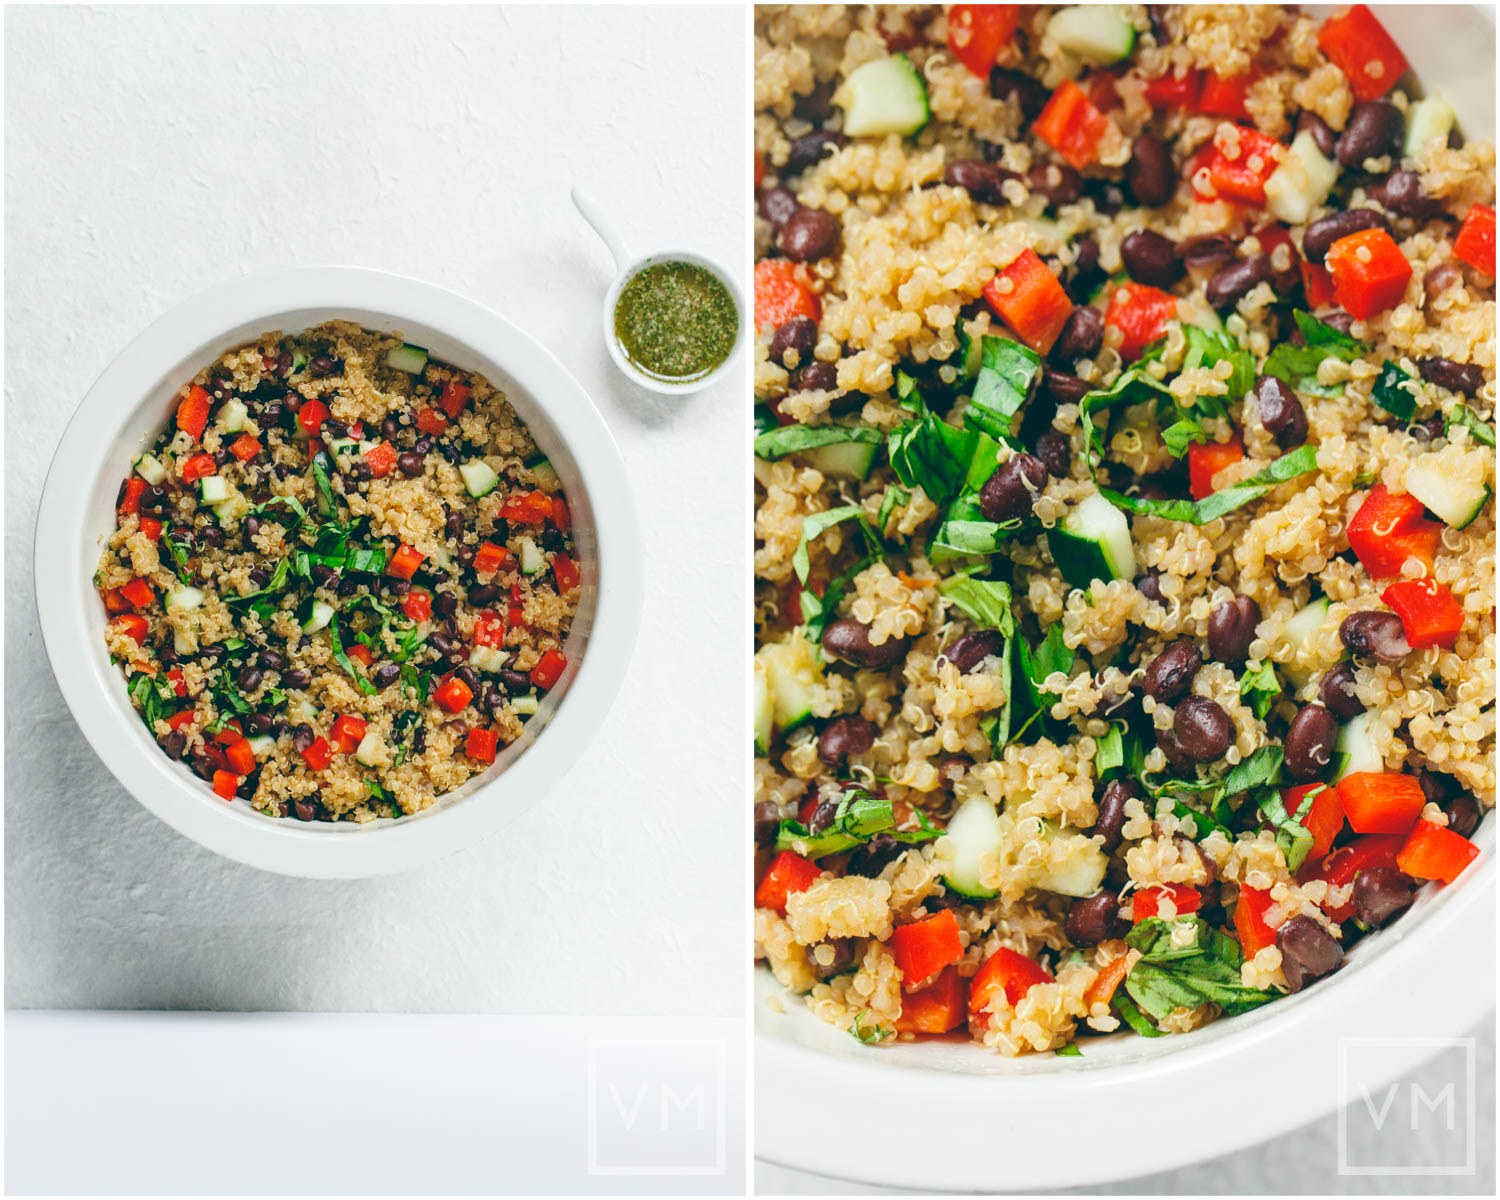 Quick Quinoa & Black Bean Salad with Spicy Cilantro Vinaigrette